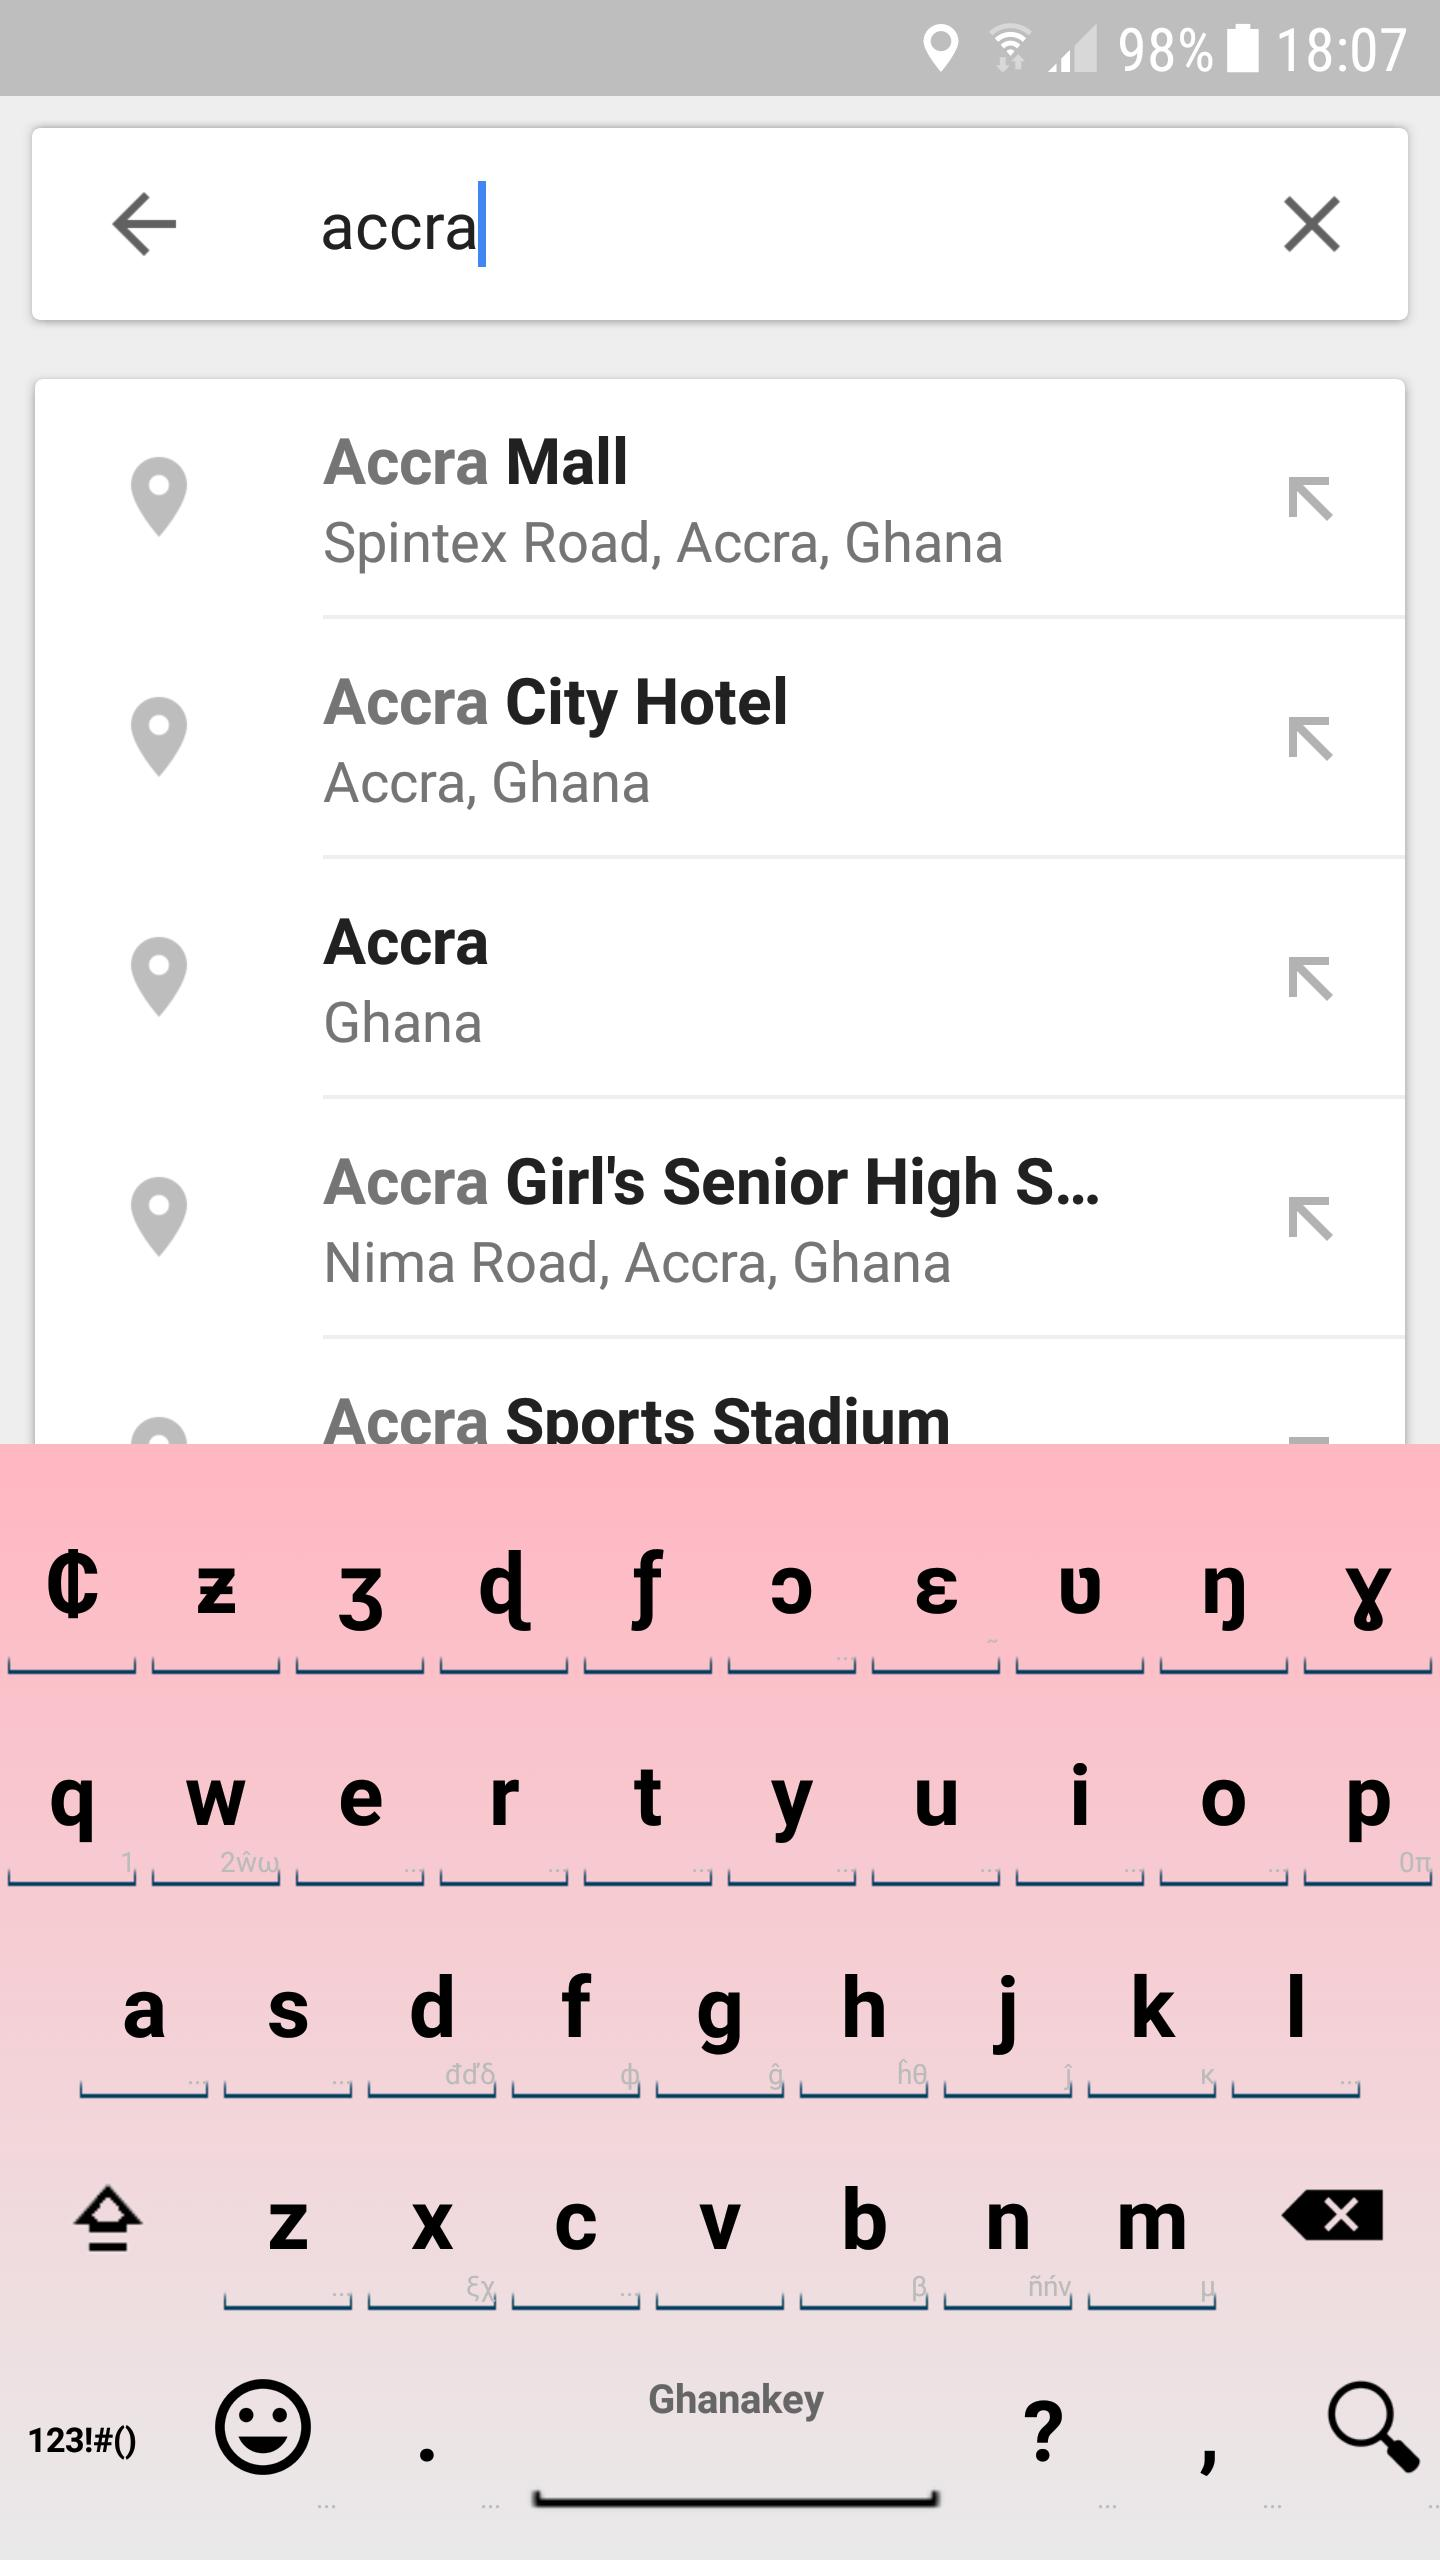 GhanaKey - Keyboard for Ghana for Android - APK Download